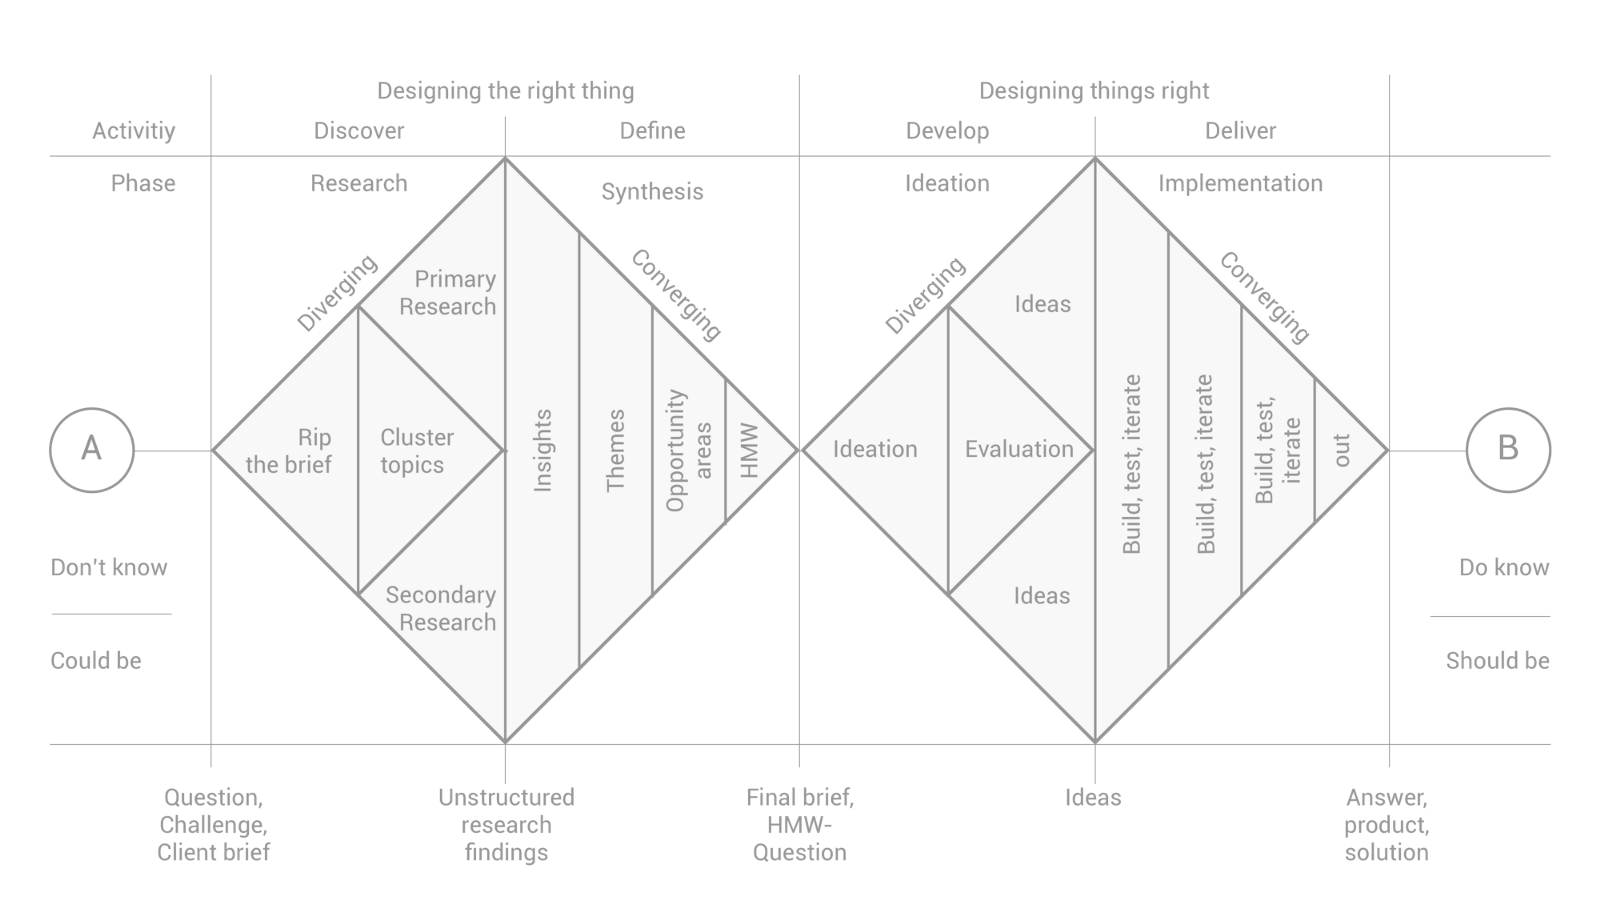 Applied Theory Of Design Thinking Noteworthy The Journal Blog Design Thinking Design Thinking Process Ux Design Process